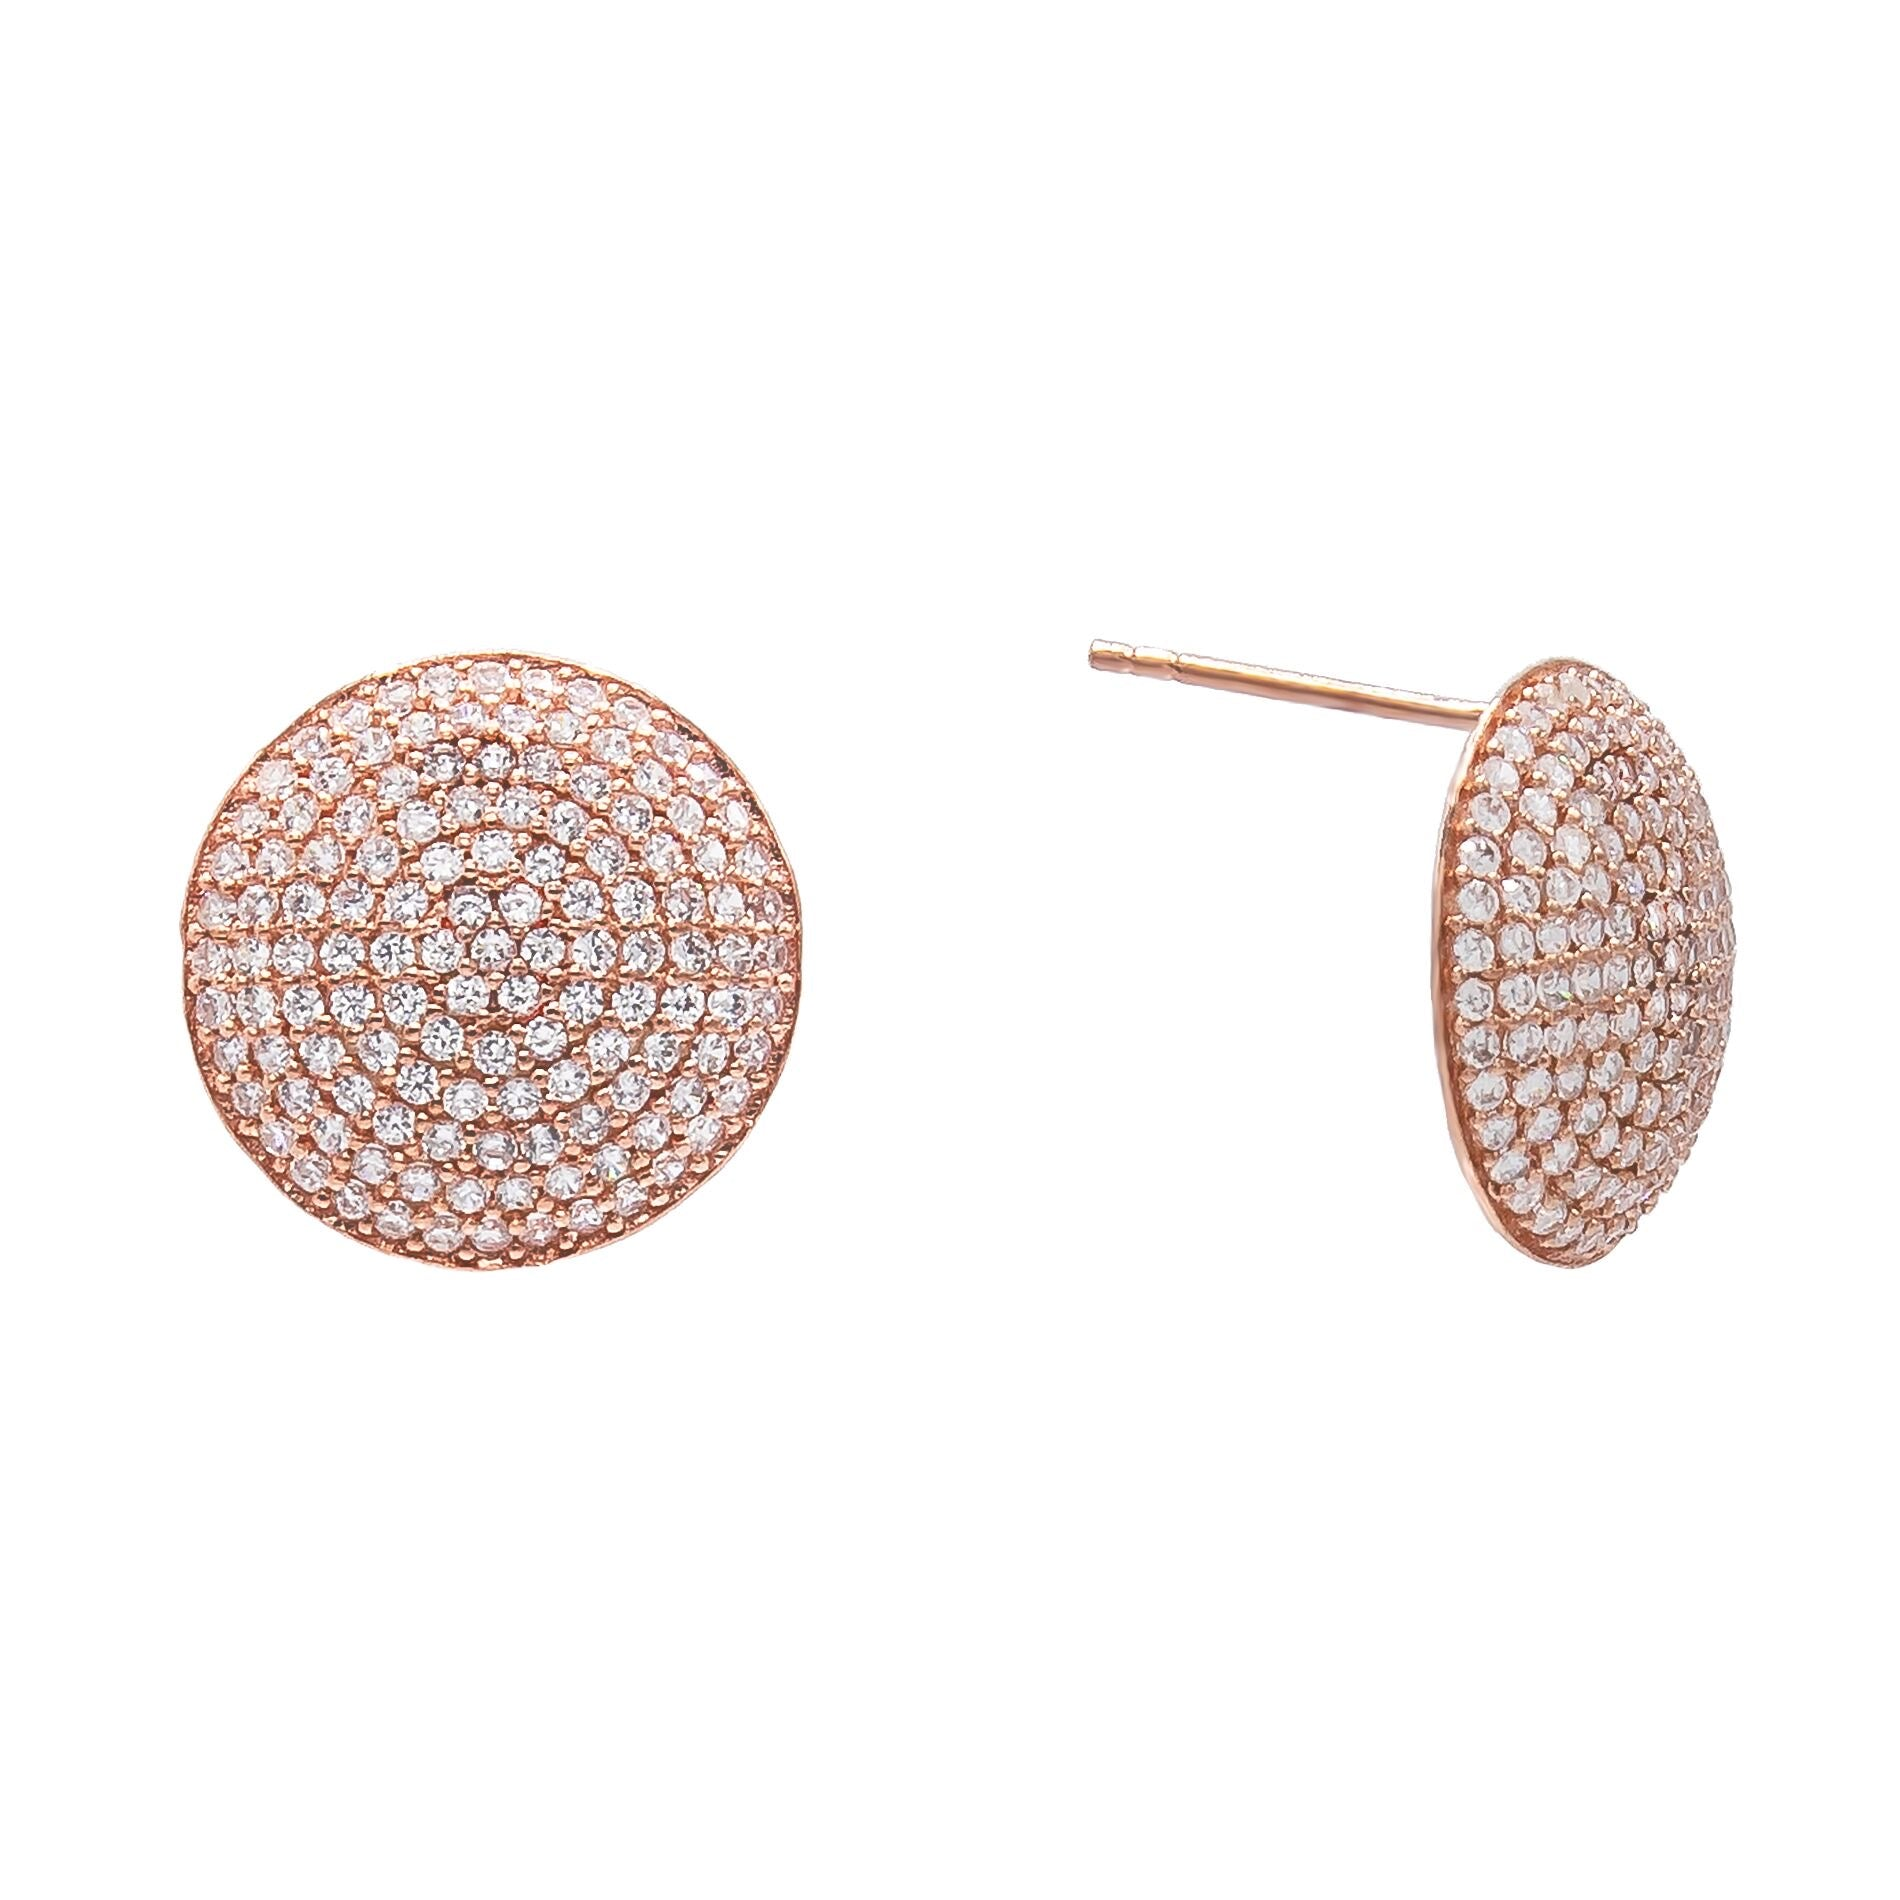 Pavé Circle Stud Earring  | Urban Accessories NYC